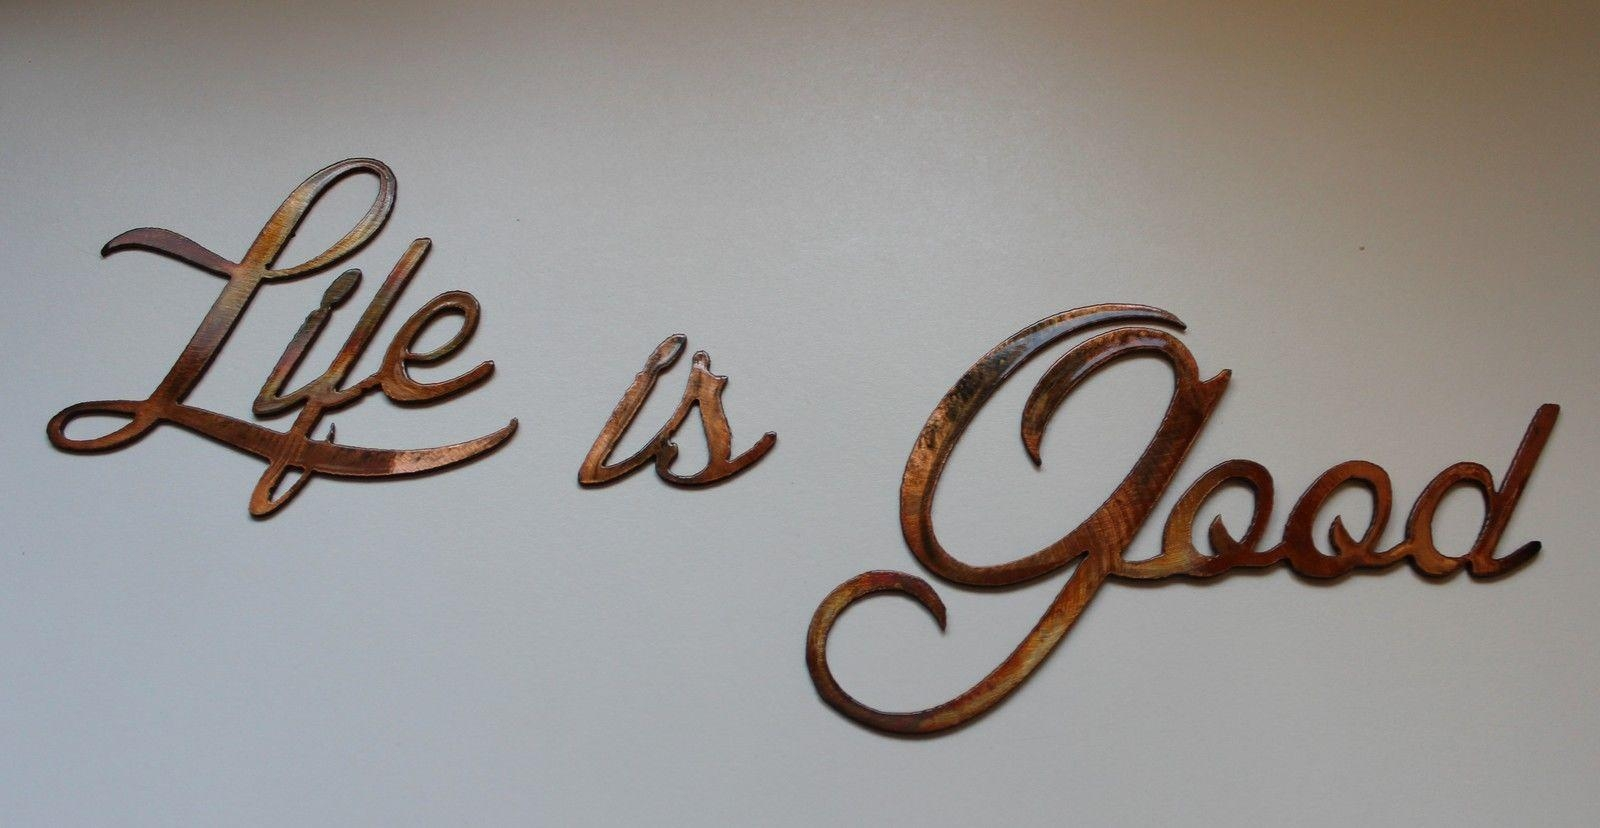 Life Is Good Metal Wall Art Accents Copper/bronze Finish • $ (Image 7 of 20)